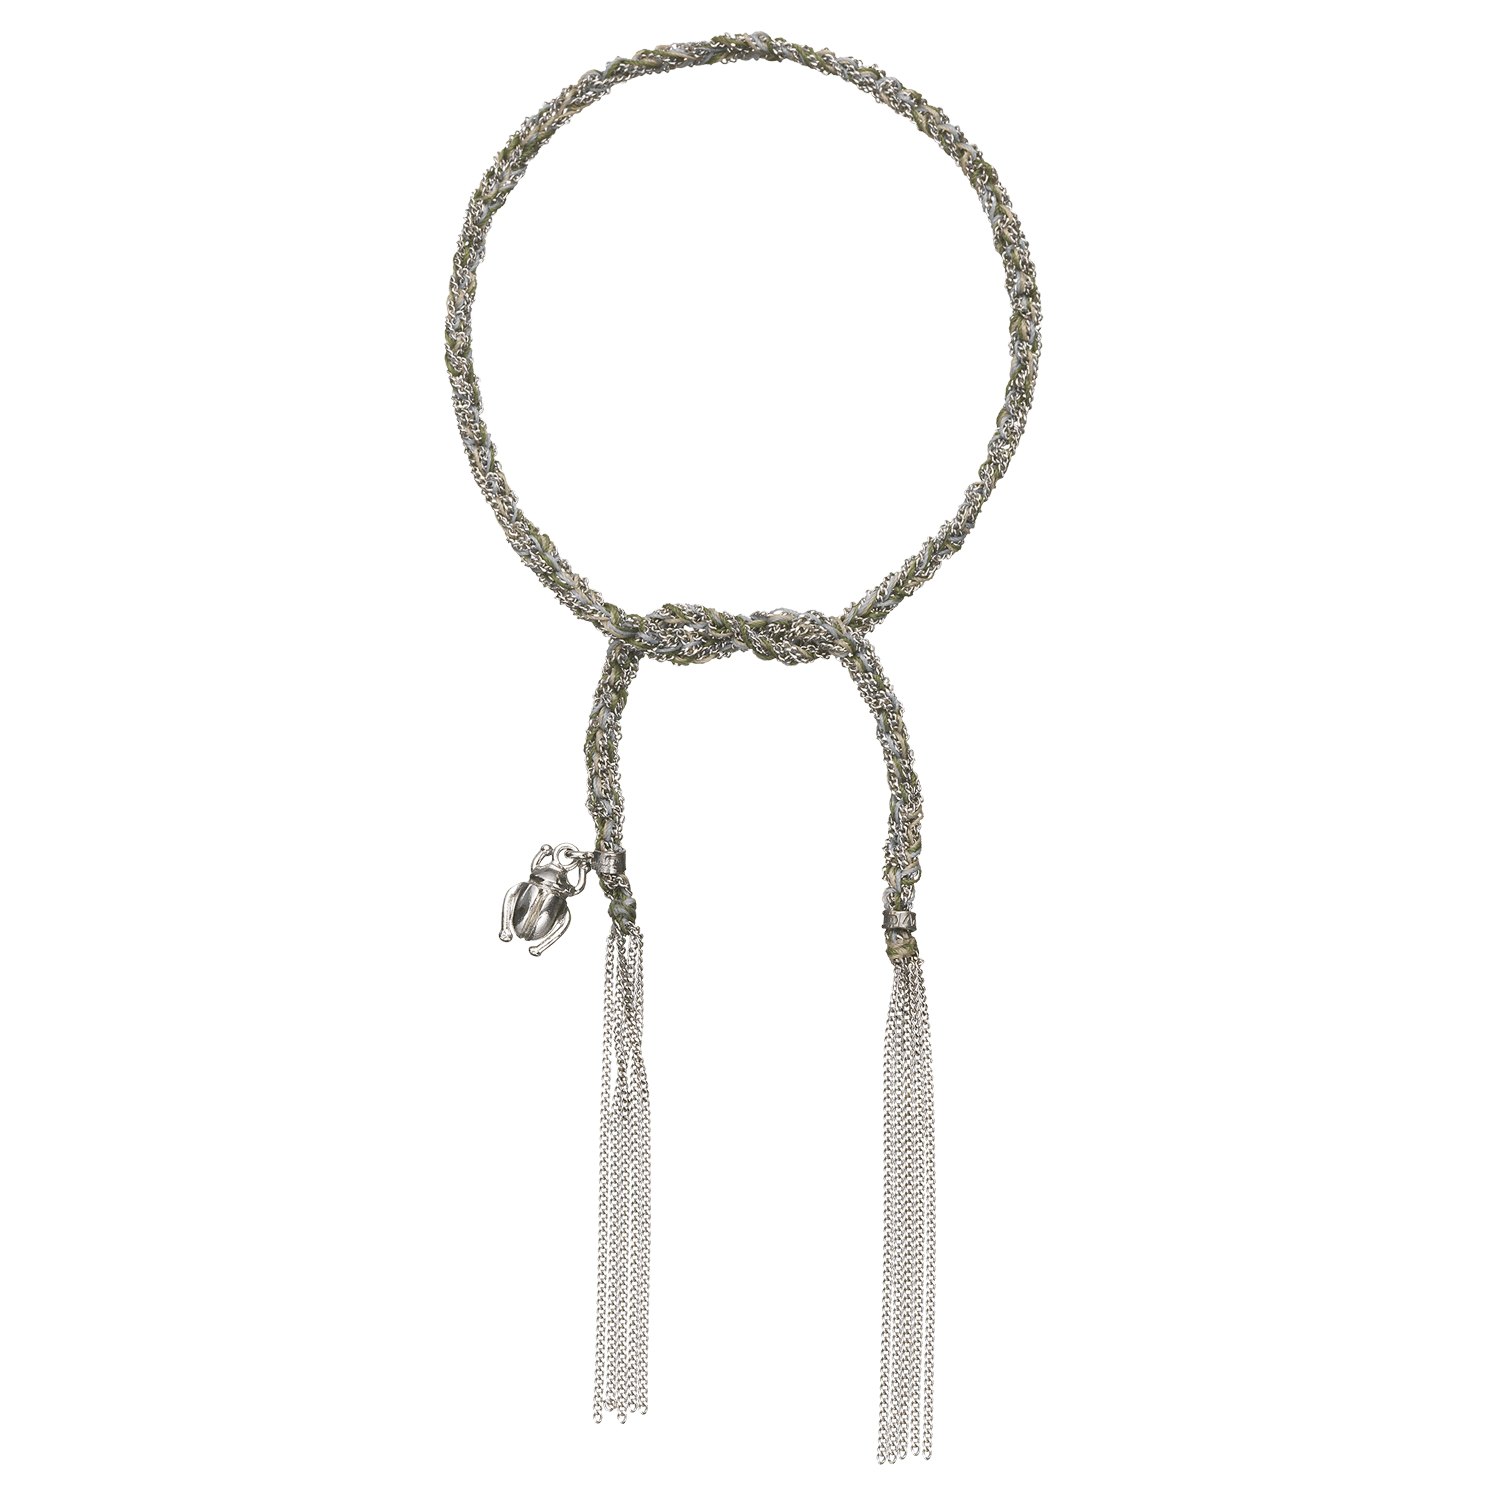 Carolina Bucci Lucky Bracelet with Strength Charm White Gold